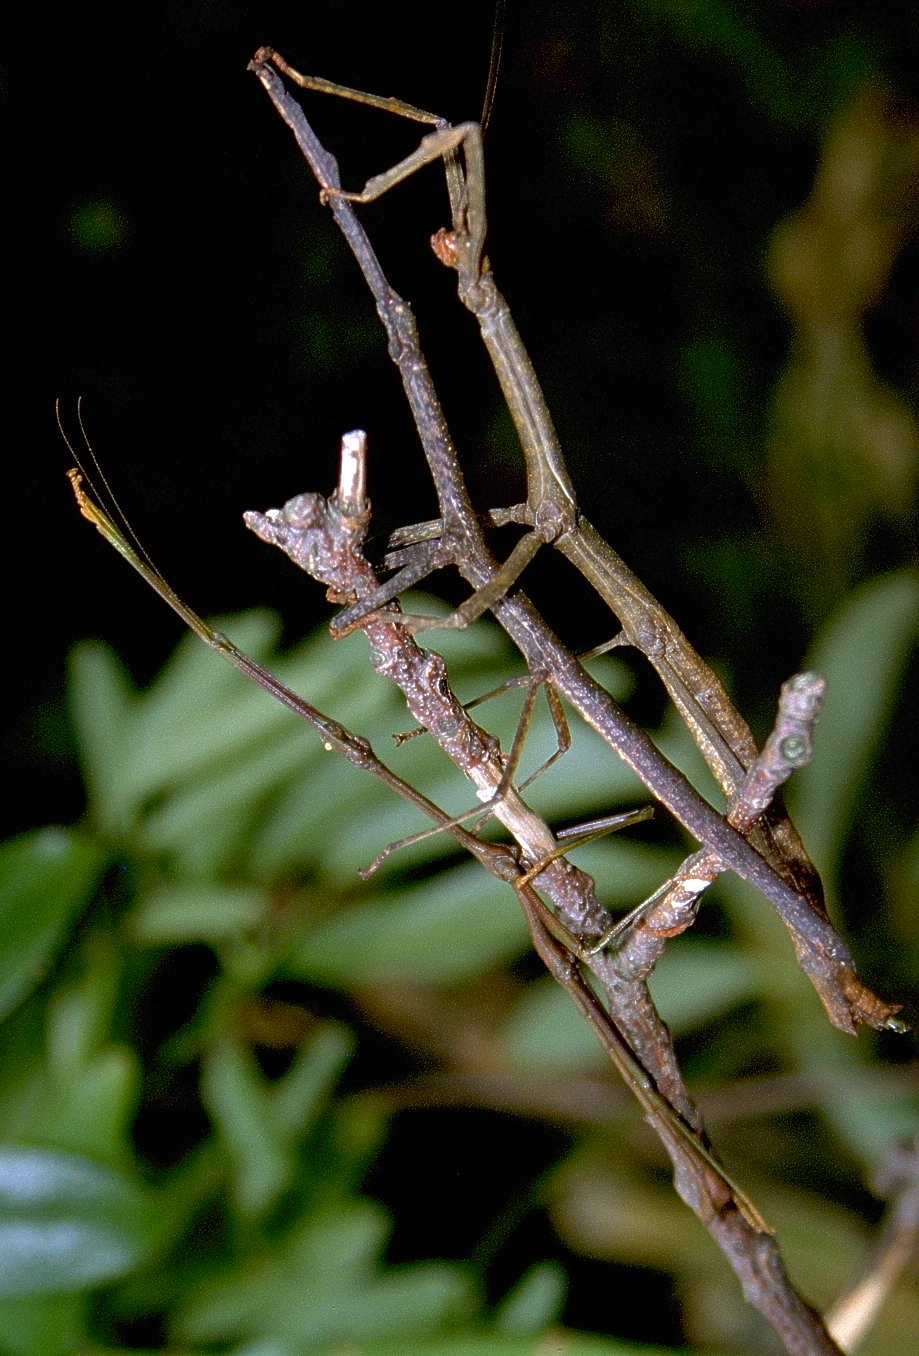 These walking sticks (two females and one male of Lonchodes brevipes) from Western Malaysia do not need to give up their camouflage when they just drop their eggs to the ground.